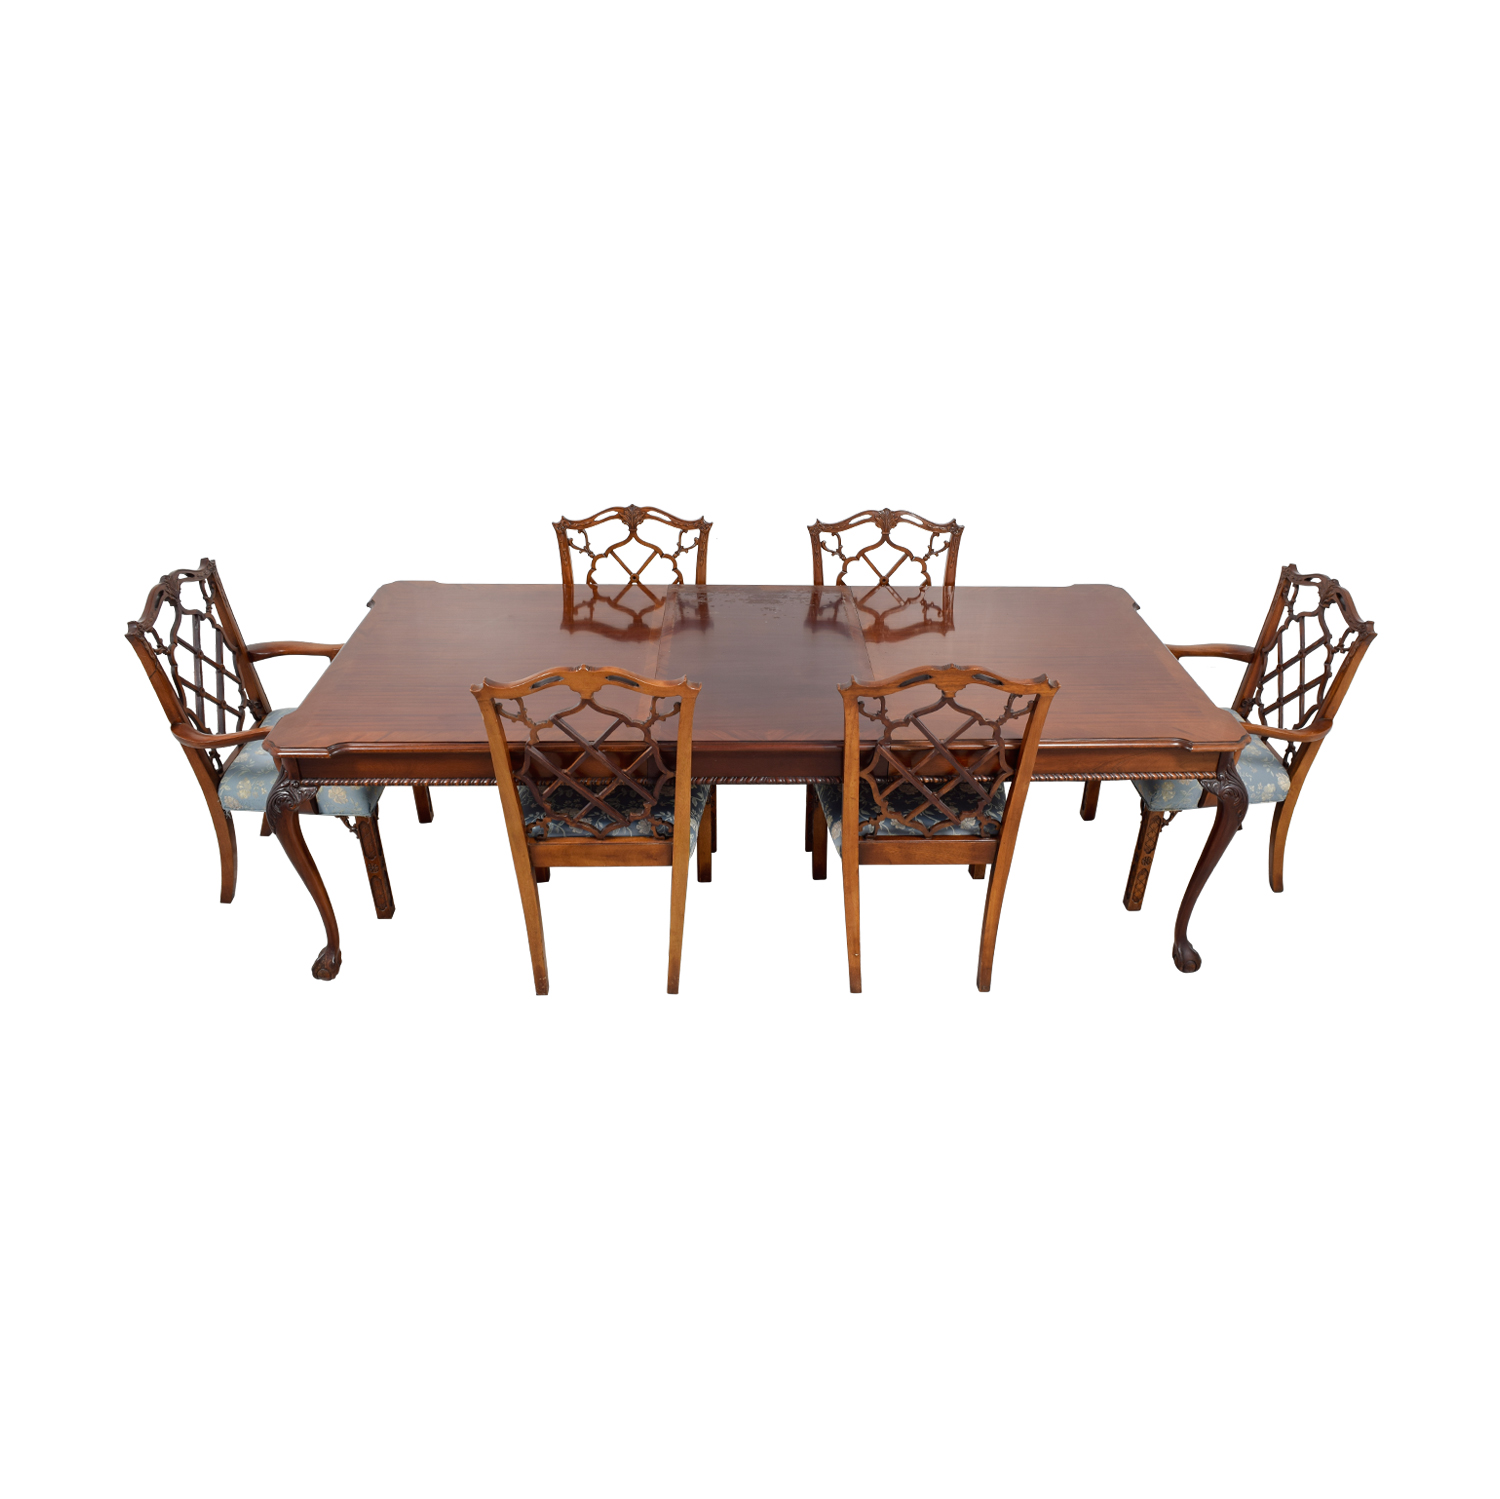 Century Dining Table with Extension Leaf and Chelsea Custom Upholstered Chairs sale